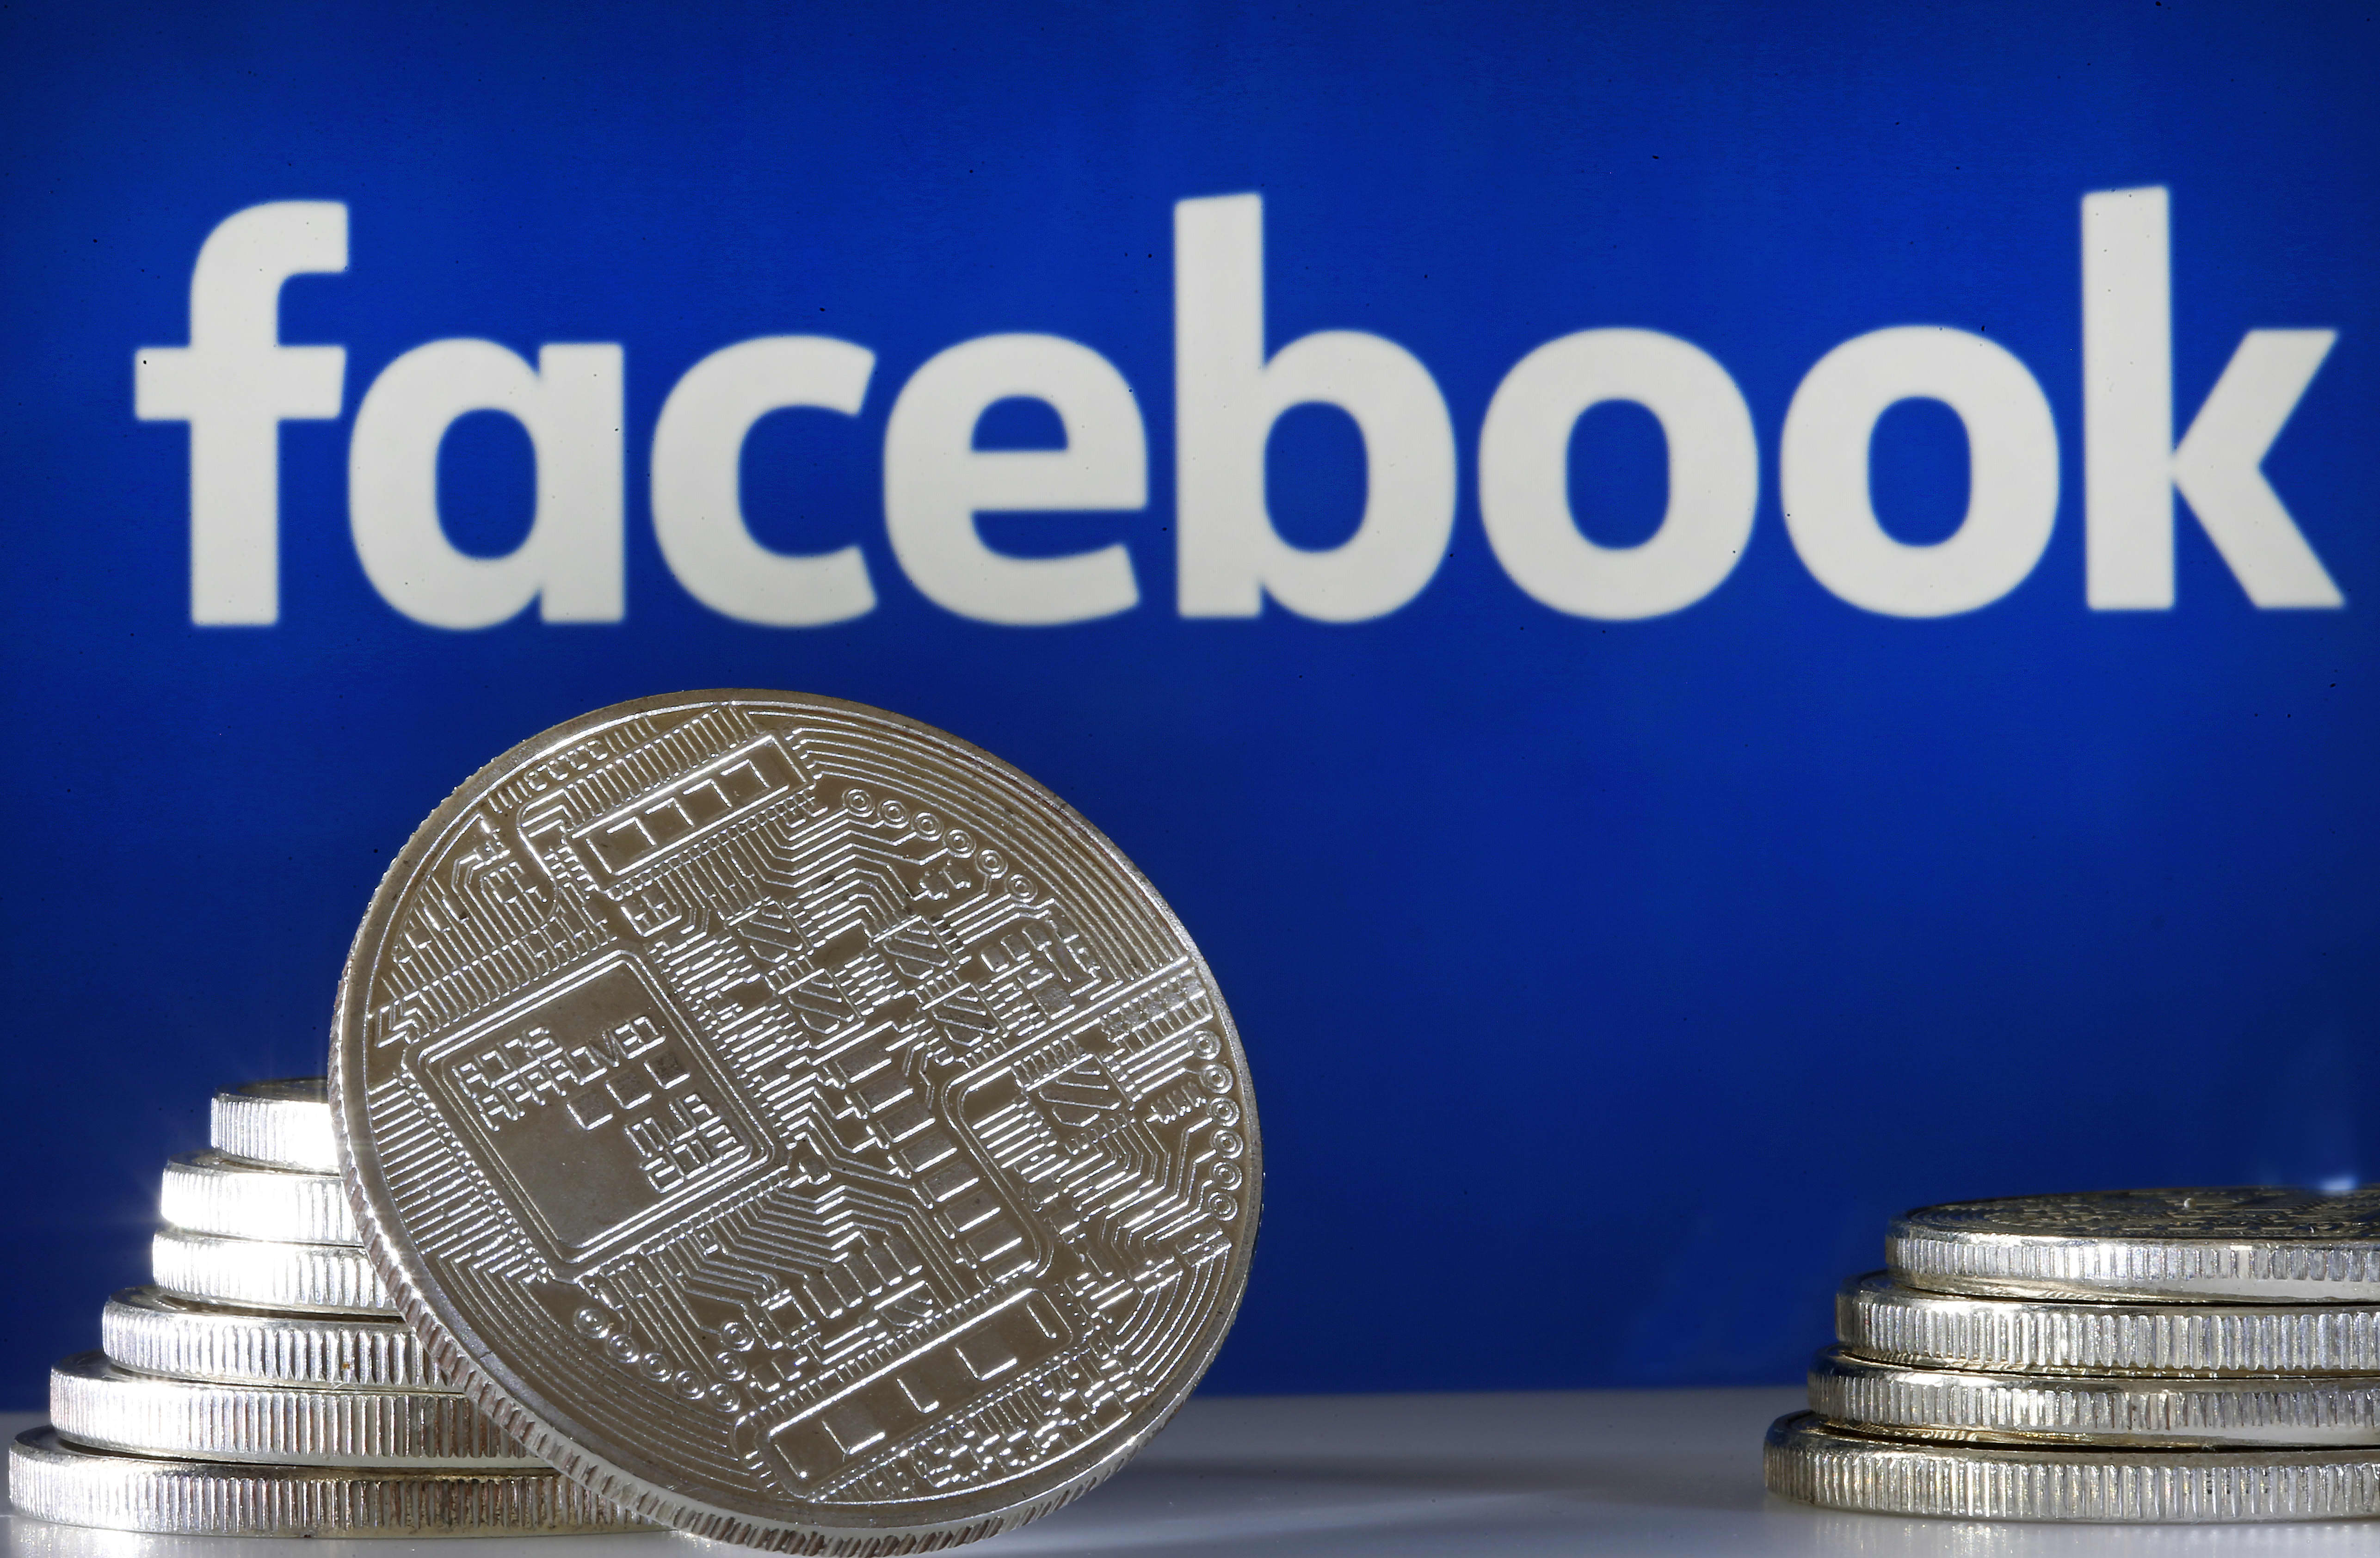 Facebook created a 'gateway drug' to introduce billions to cryptocurrency, experts say